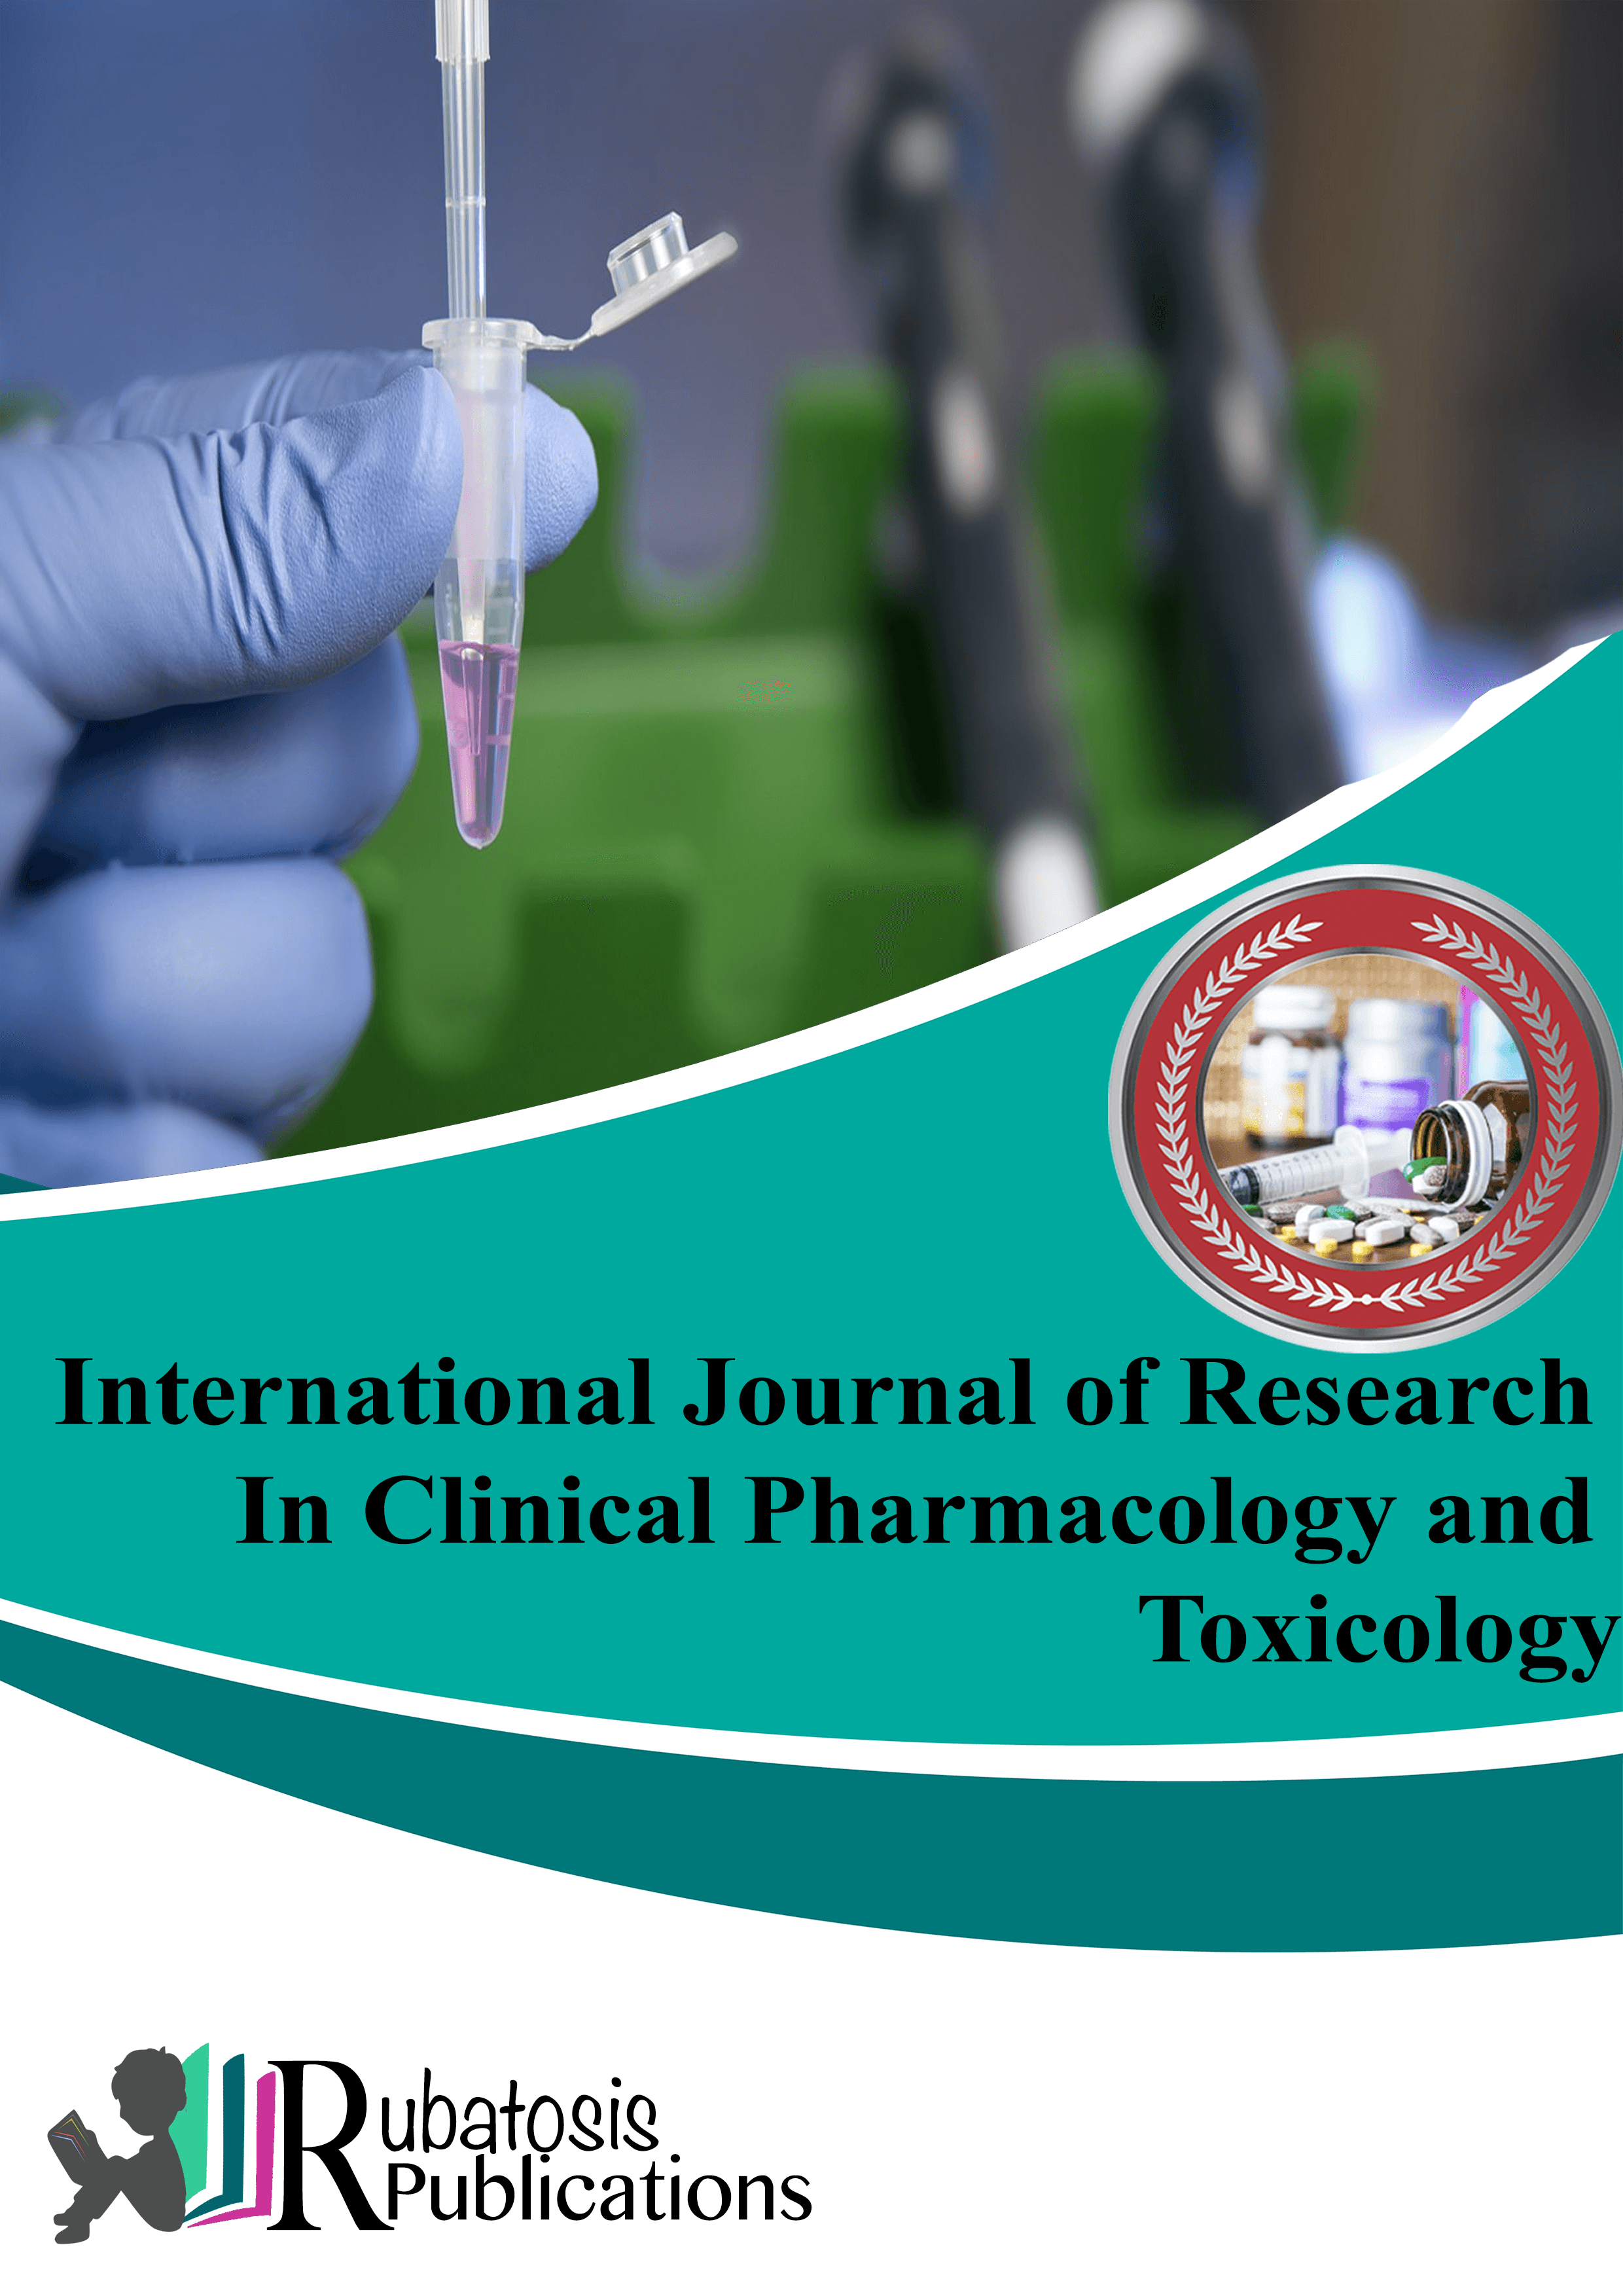 International Journal of Research In Clinical Pharmacology and Toxicology